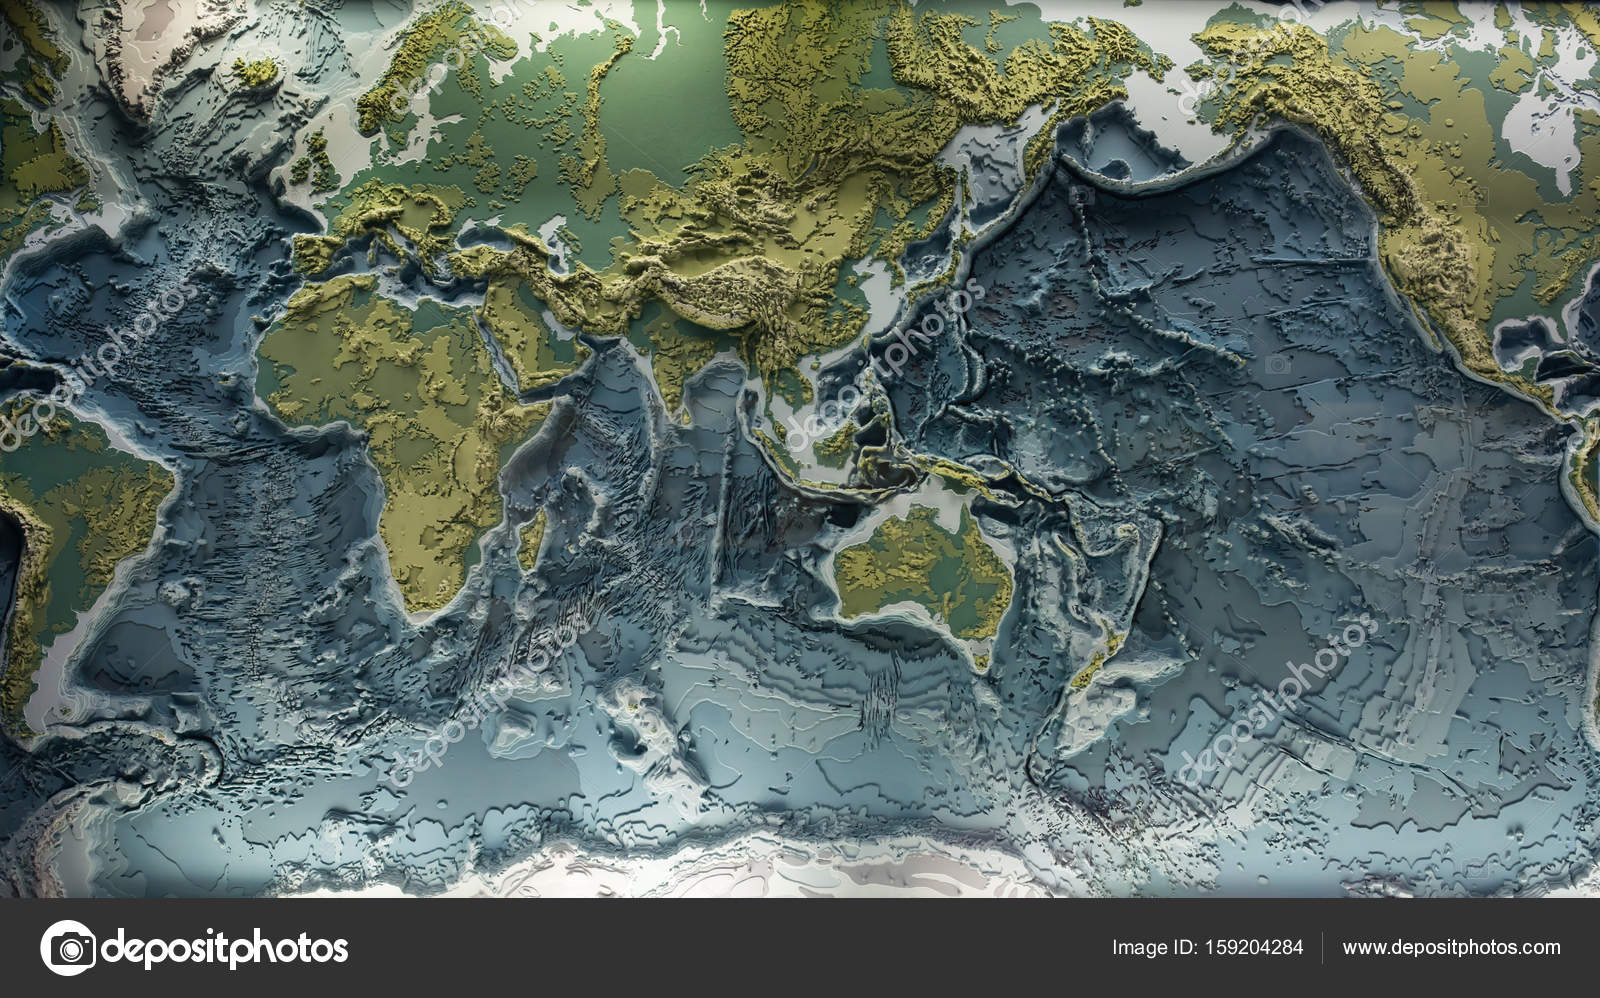 World relief 3d model stock photo budabar 159204284 3d printed model of earth relief with topographic heights of mountains and depth of oceans photo by budabar gumiabroncs Choice Image